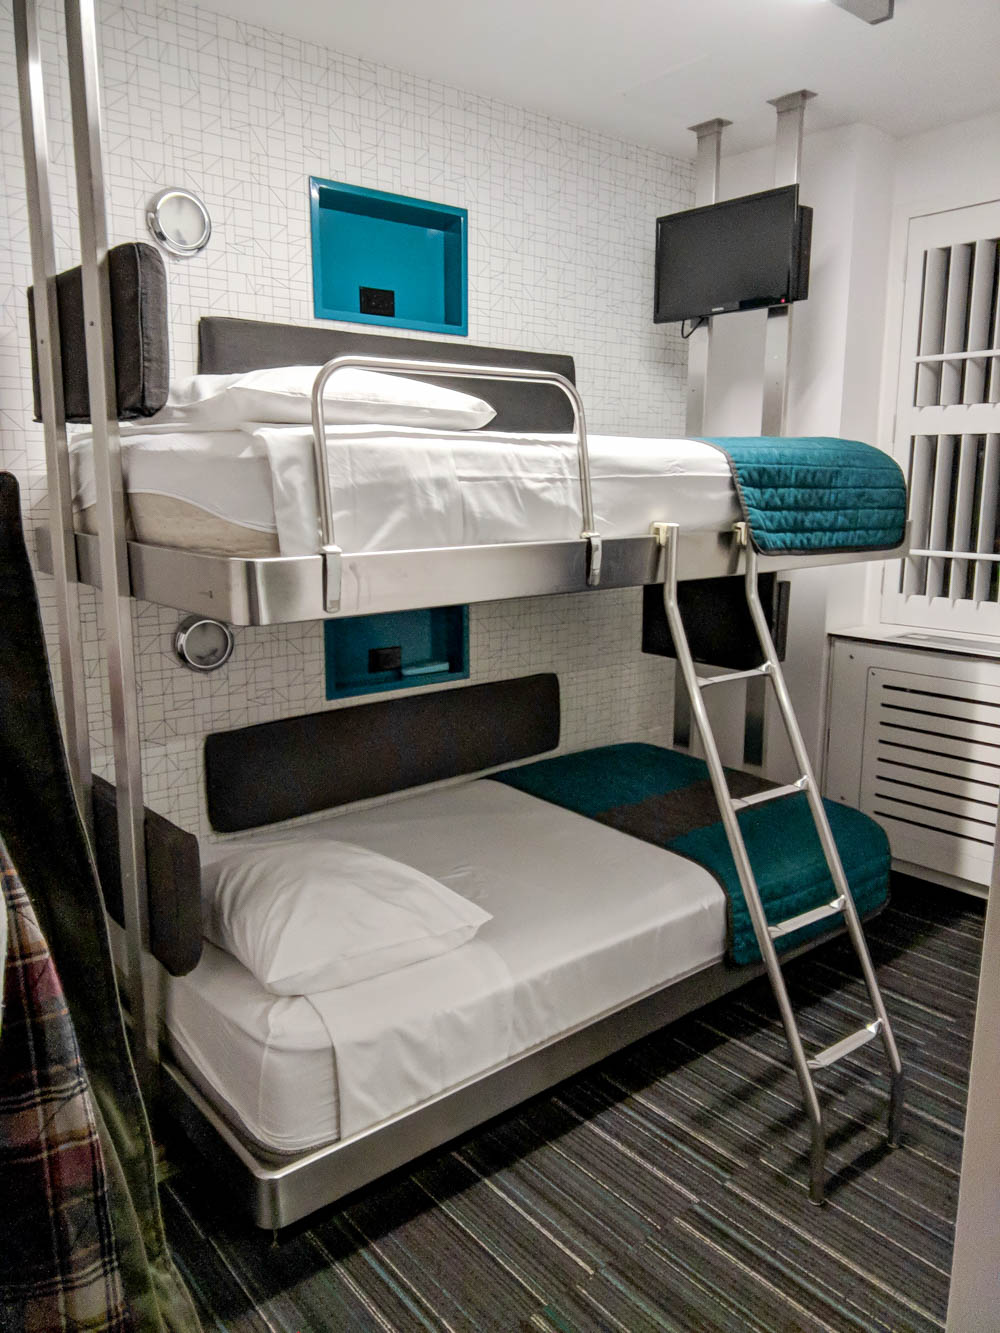 bunk beds in a tiny room